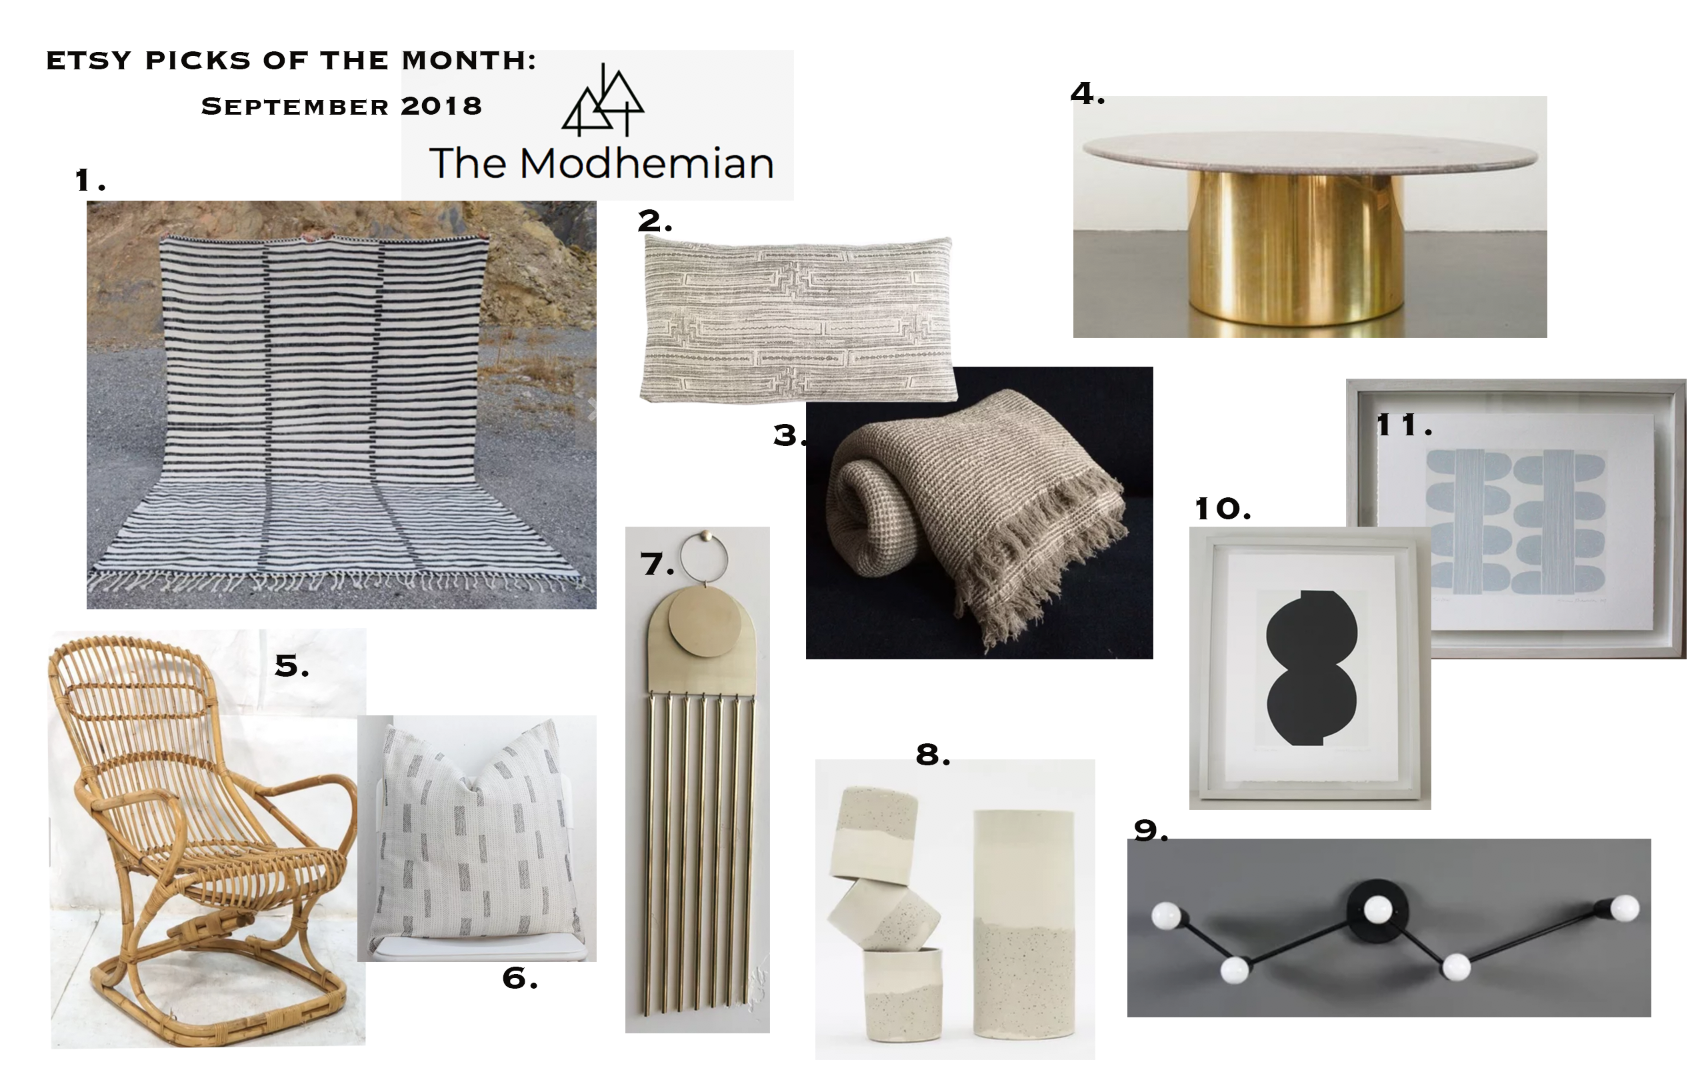 the modhemian Etsy Round Up, Etsy picks of the month